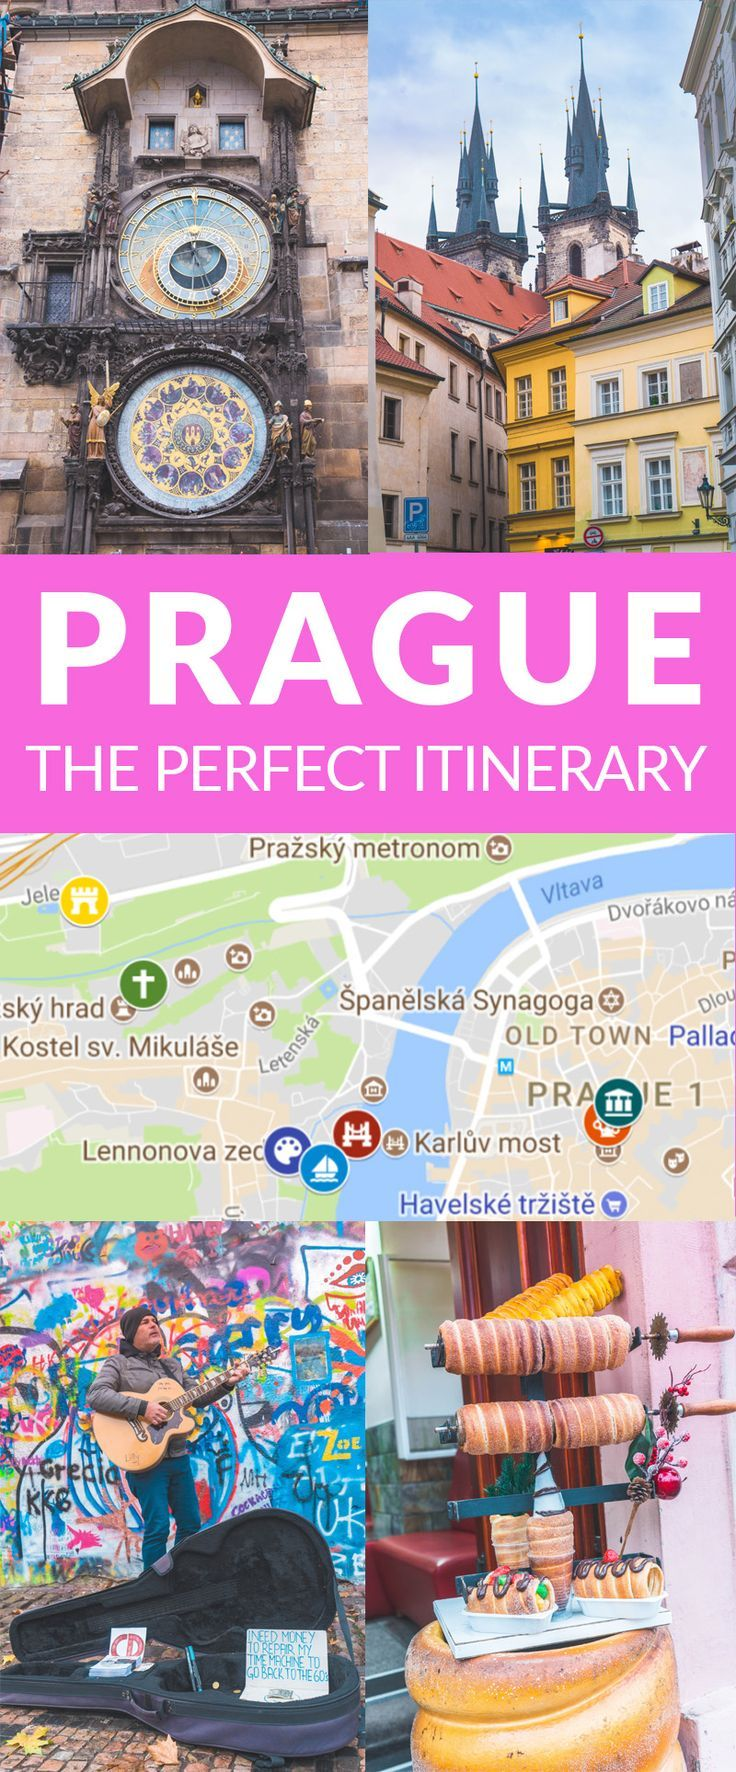 See Prague, one of the most beautiful cities in Europe.